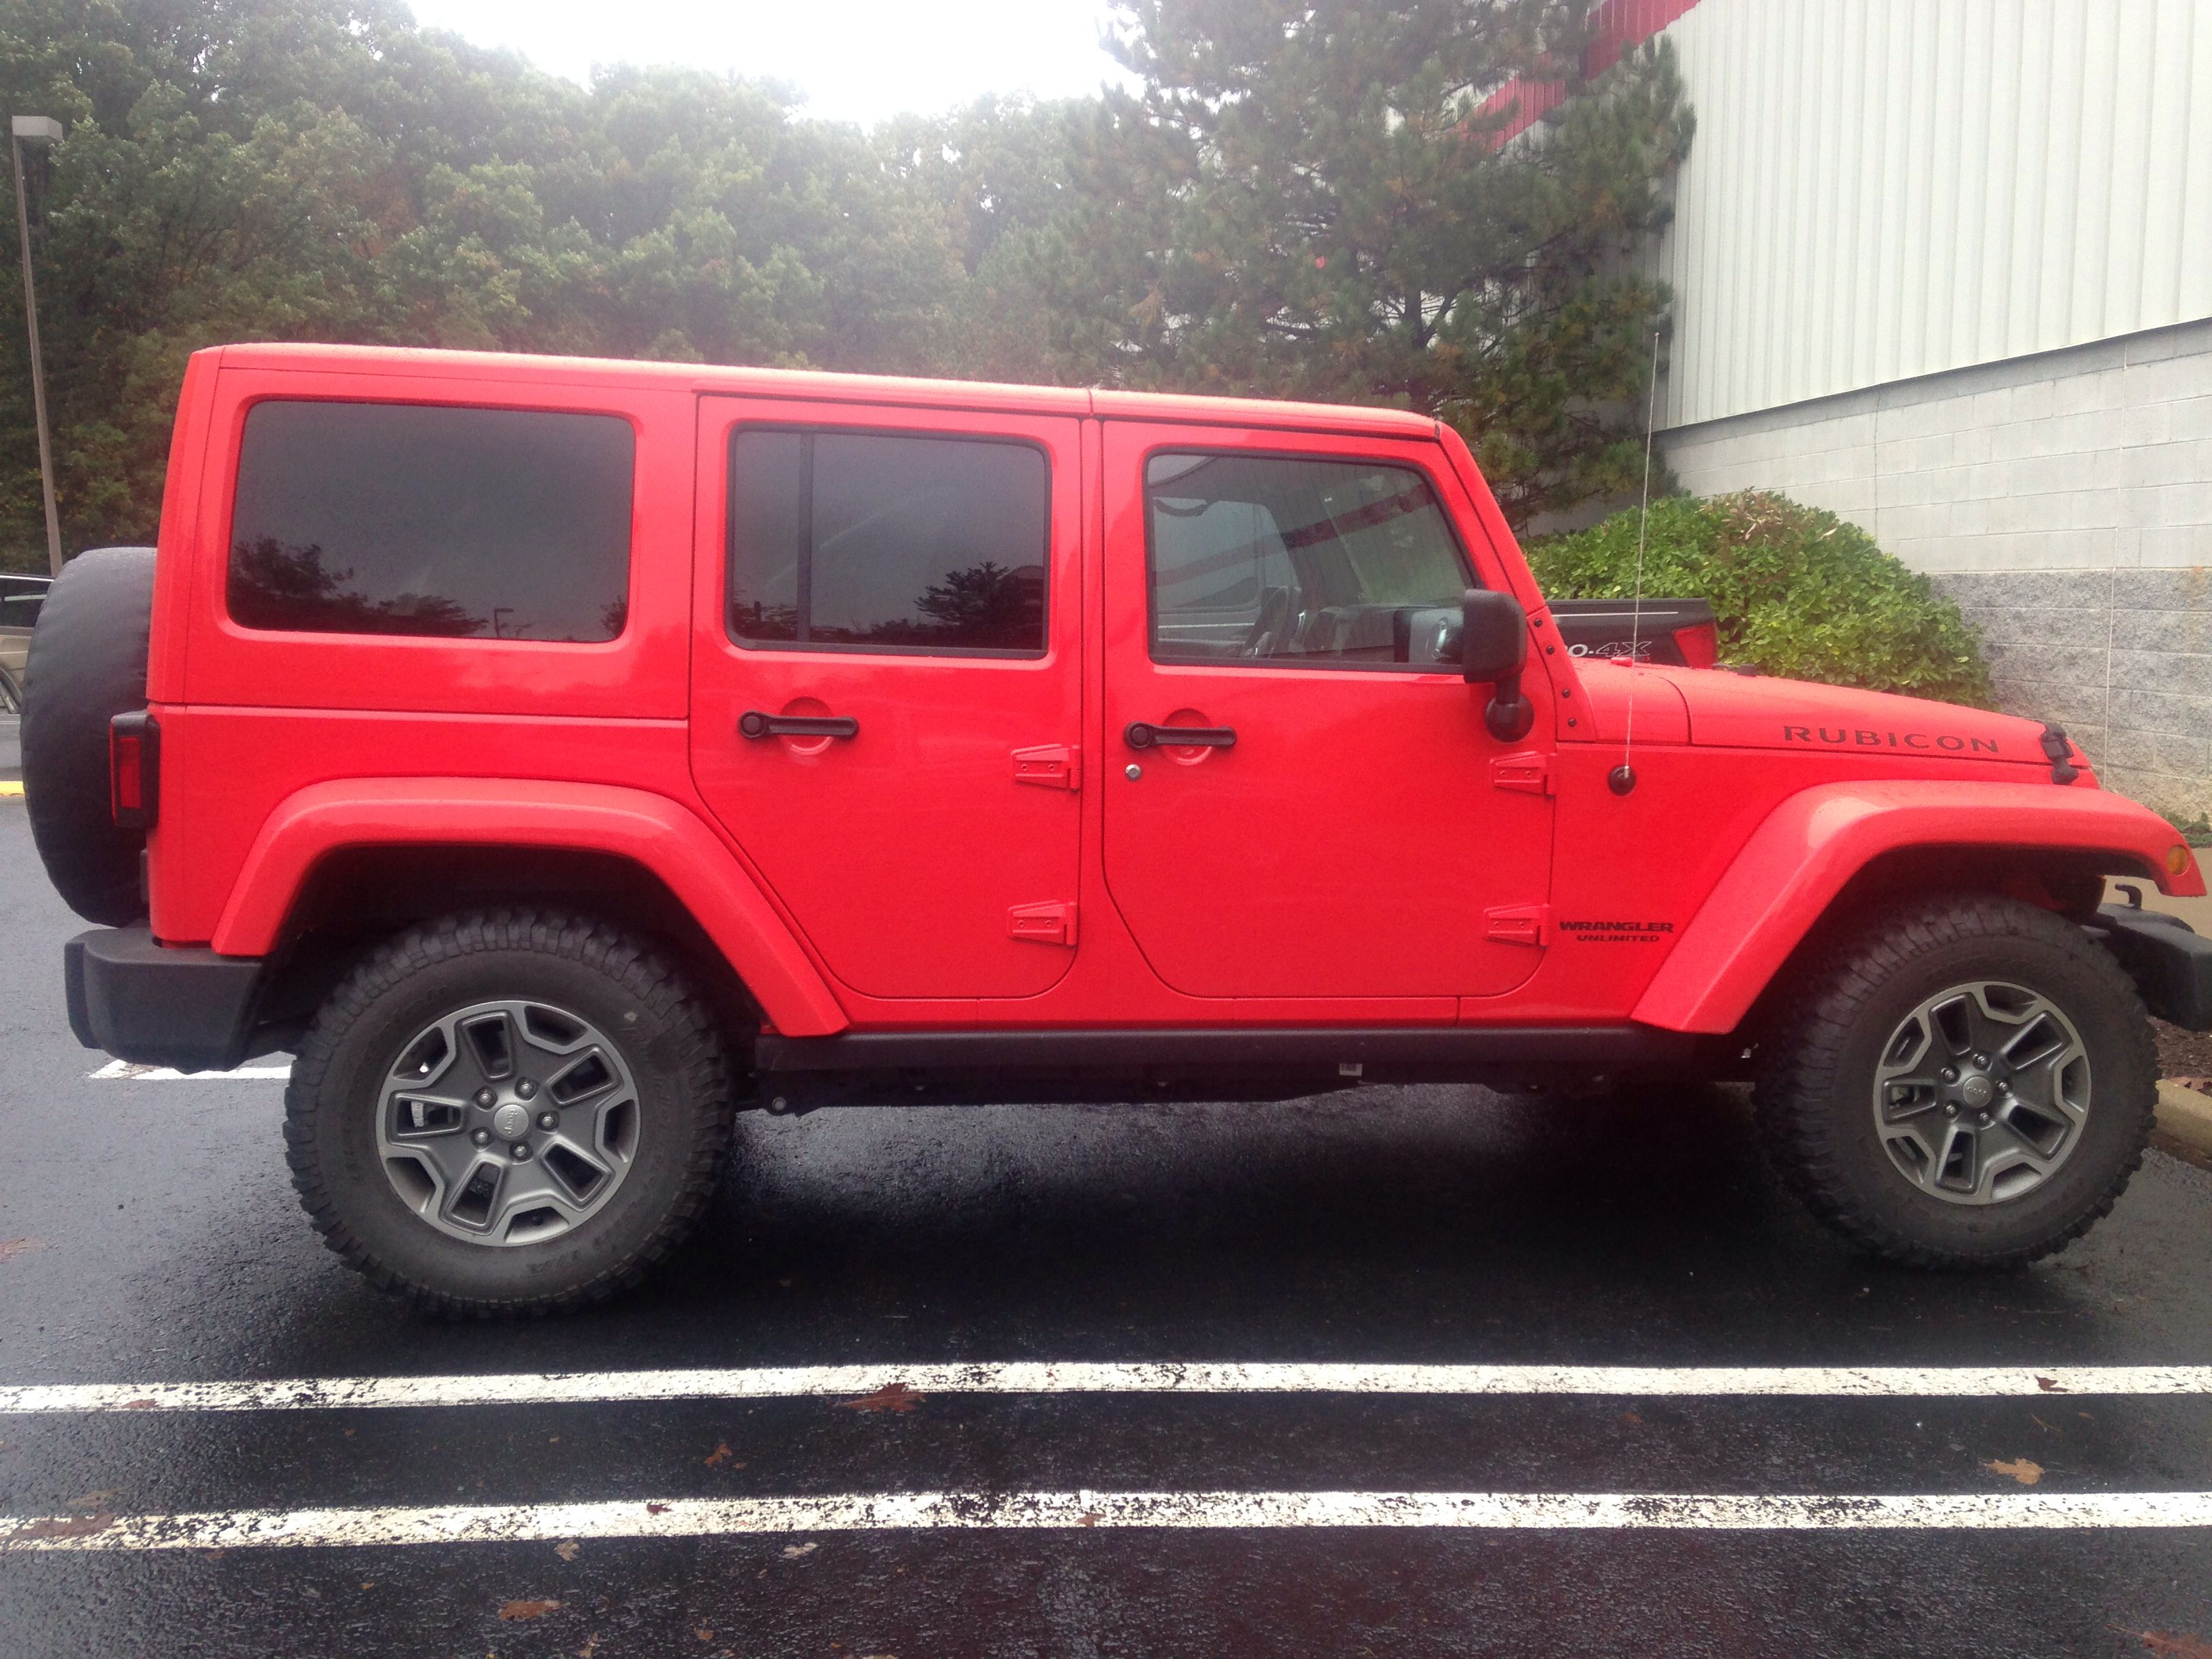 green door yellow blue full jeep red gray ip function open bright control radio back new